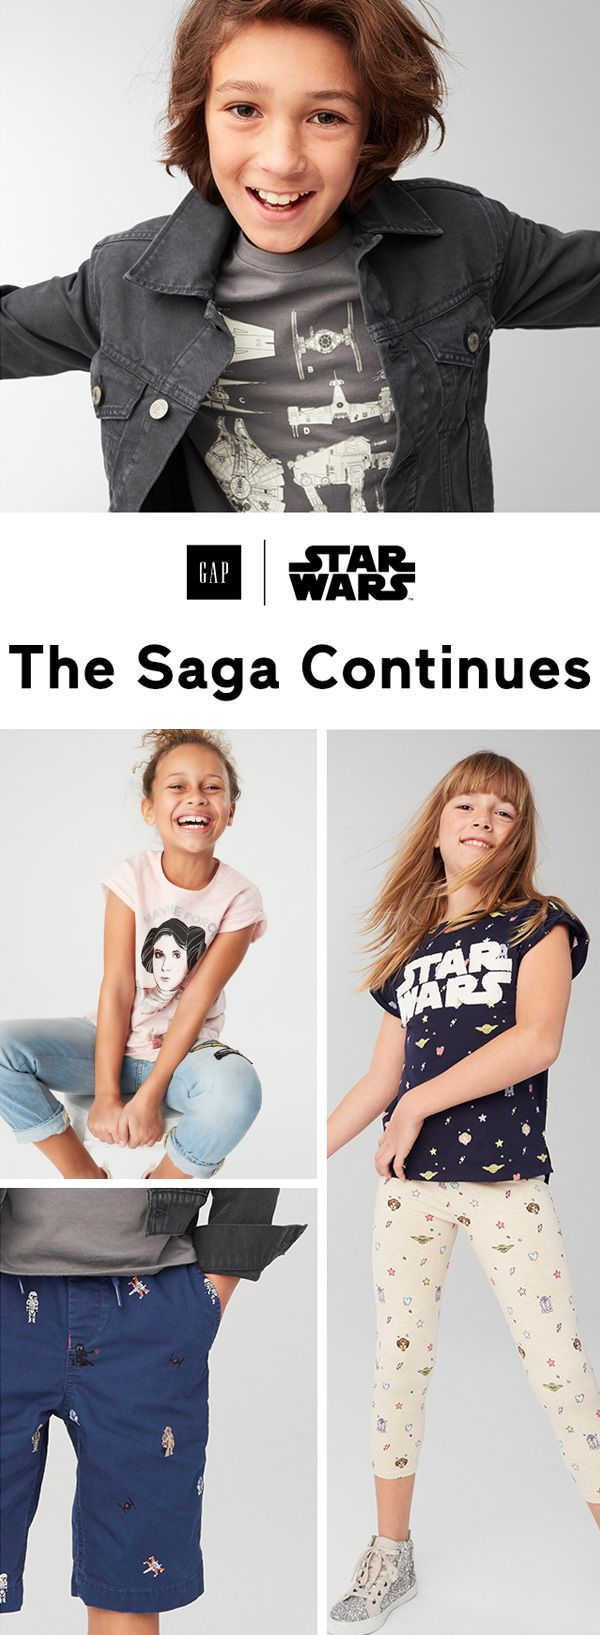 Celebrate the characters and stories that helped bring the epic saga to life with great graphic tees, embroidered shorts, printed leggings, and more. Shop the Gap x Star Wars looks at gap.com